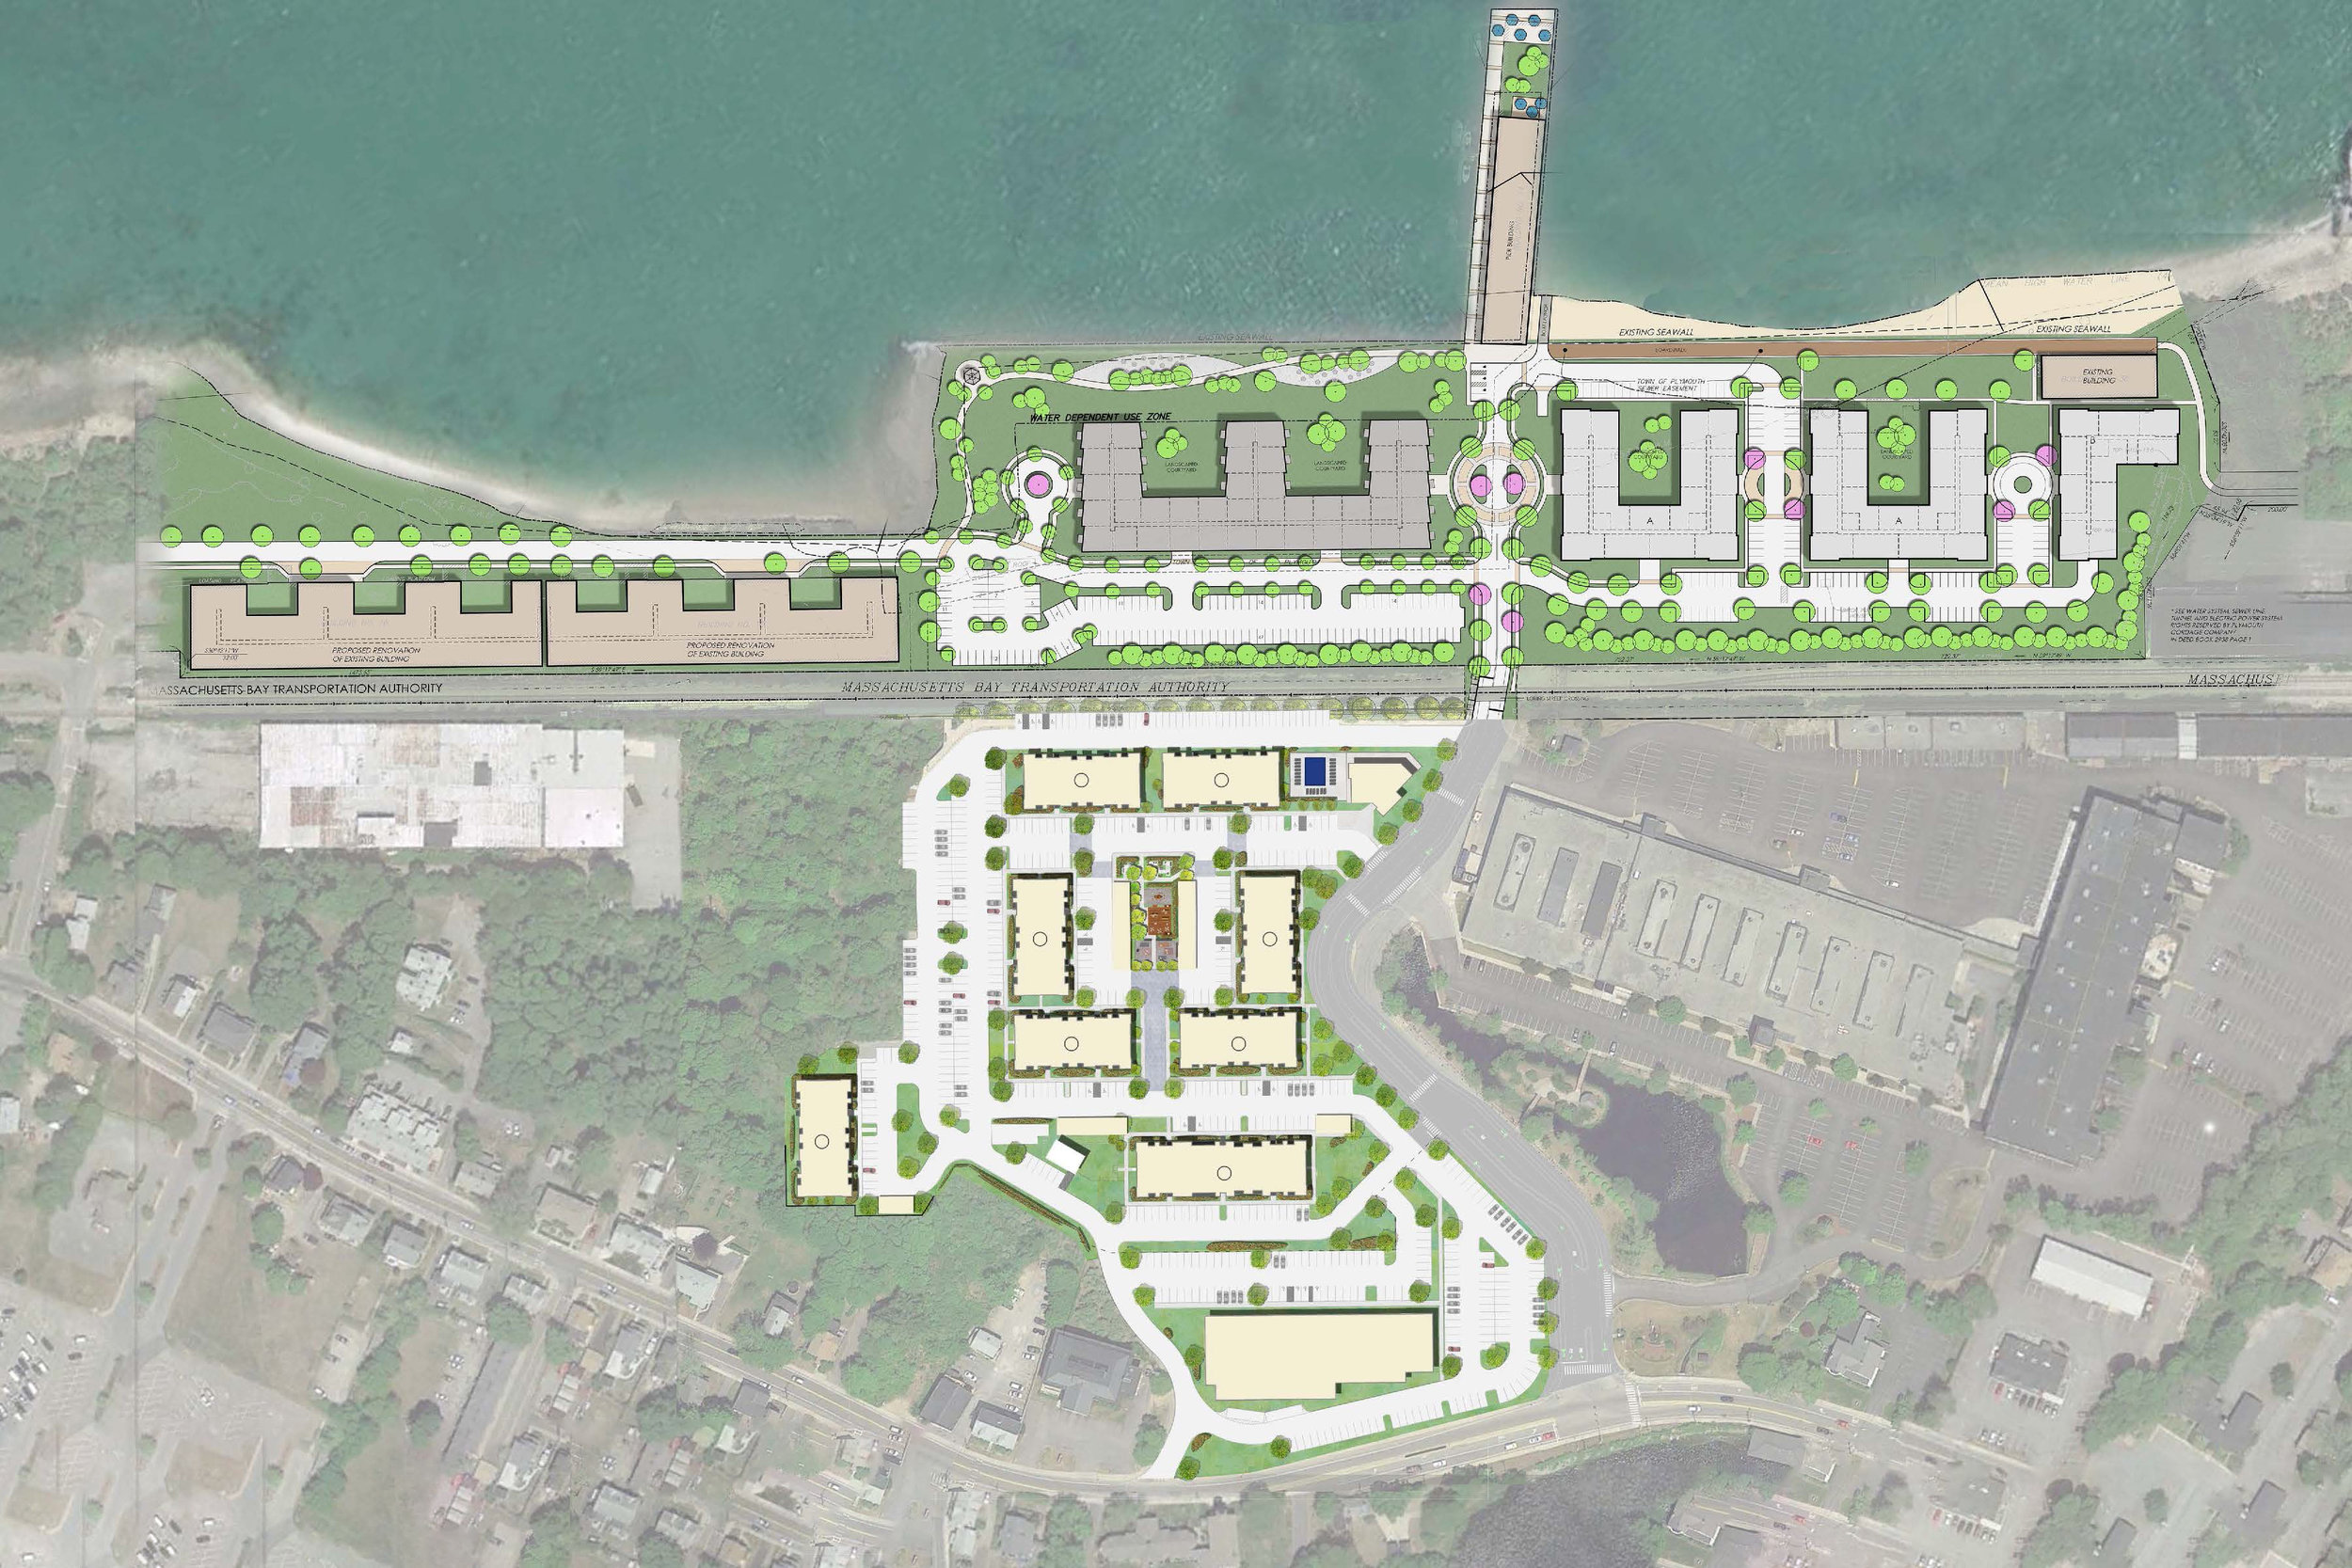 Waterfront & New Apartments    DEVELOPMENT SITE - Plymouth, MA    Master planned redevelopment of 55 acres located at the Plymouth train station on Plymouth Bay